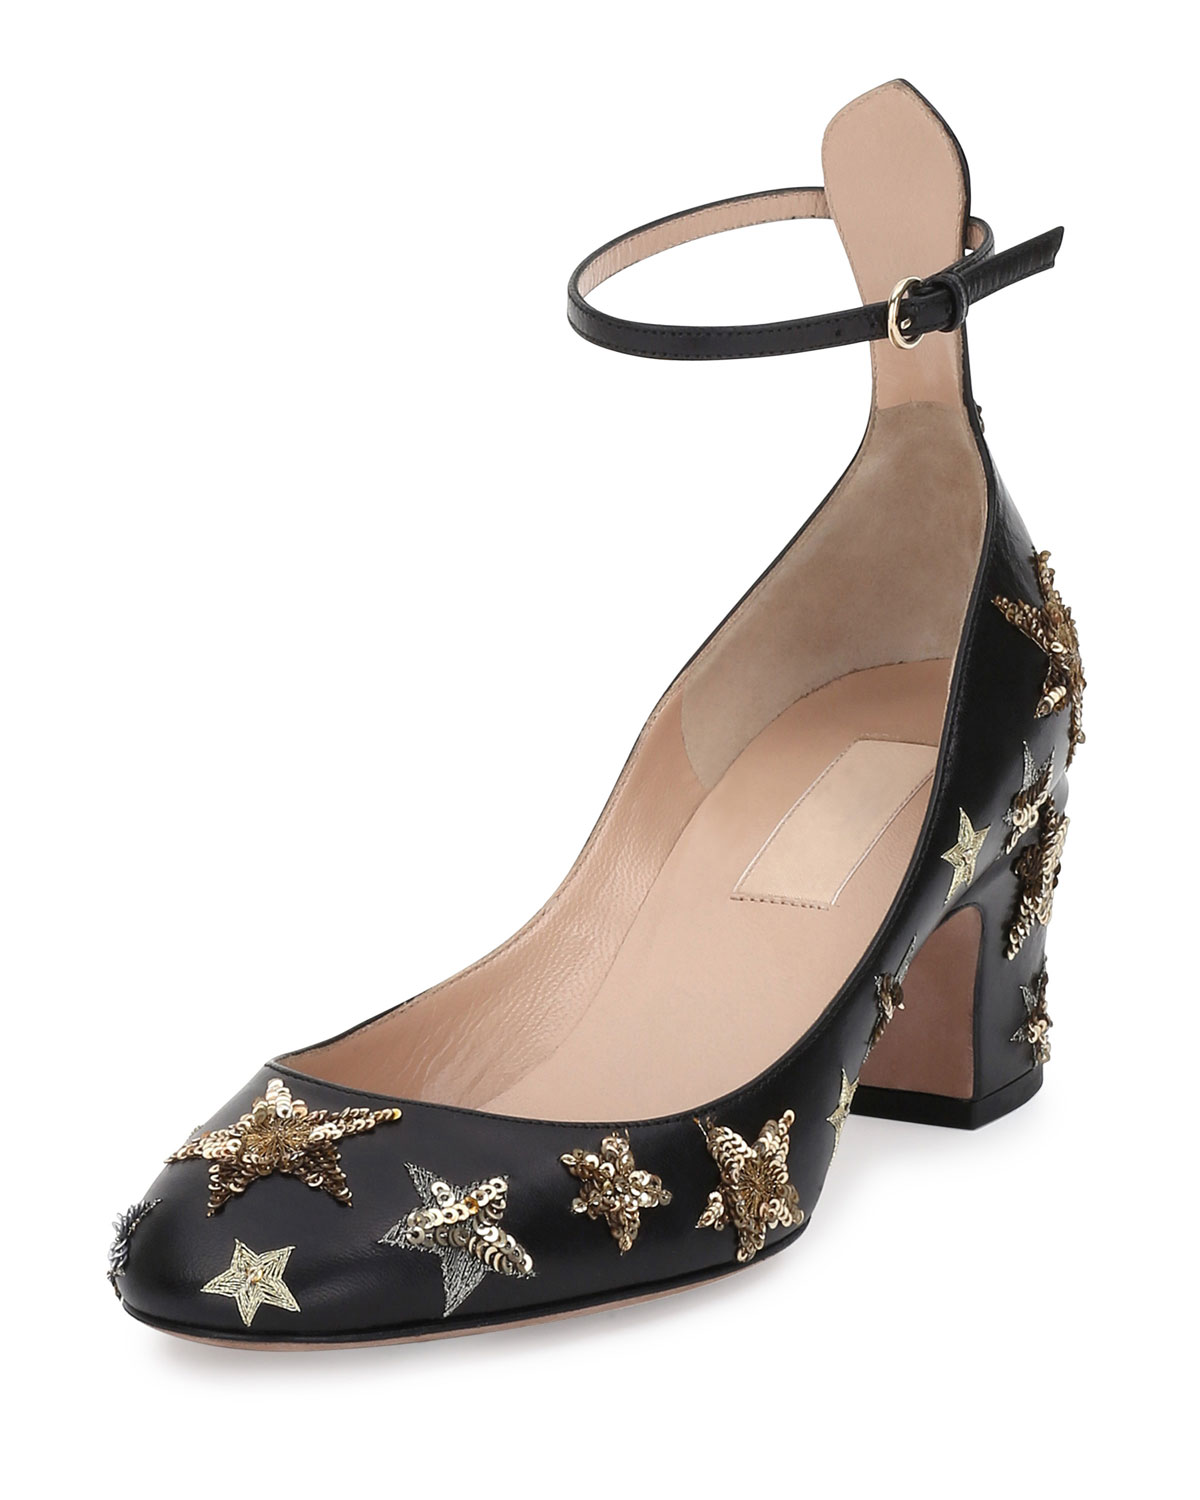 93fbe8404025 Valentino Garavani Star-Studded Low-Heel Ankle-Strap Pumps